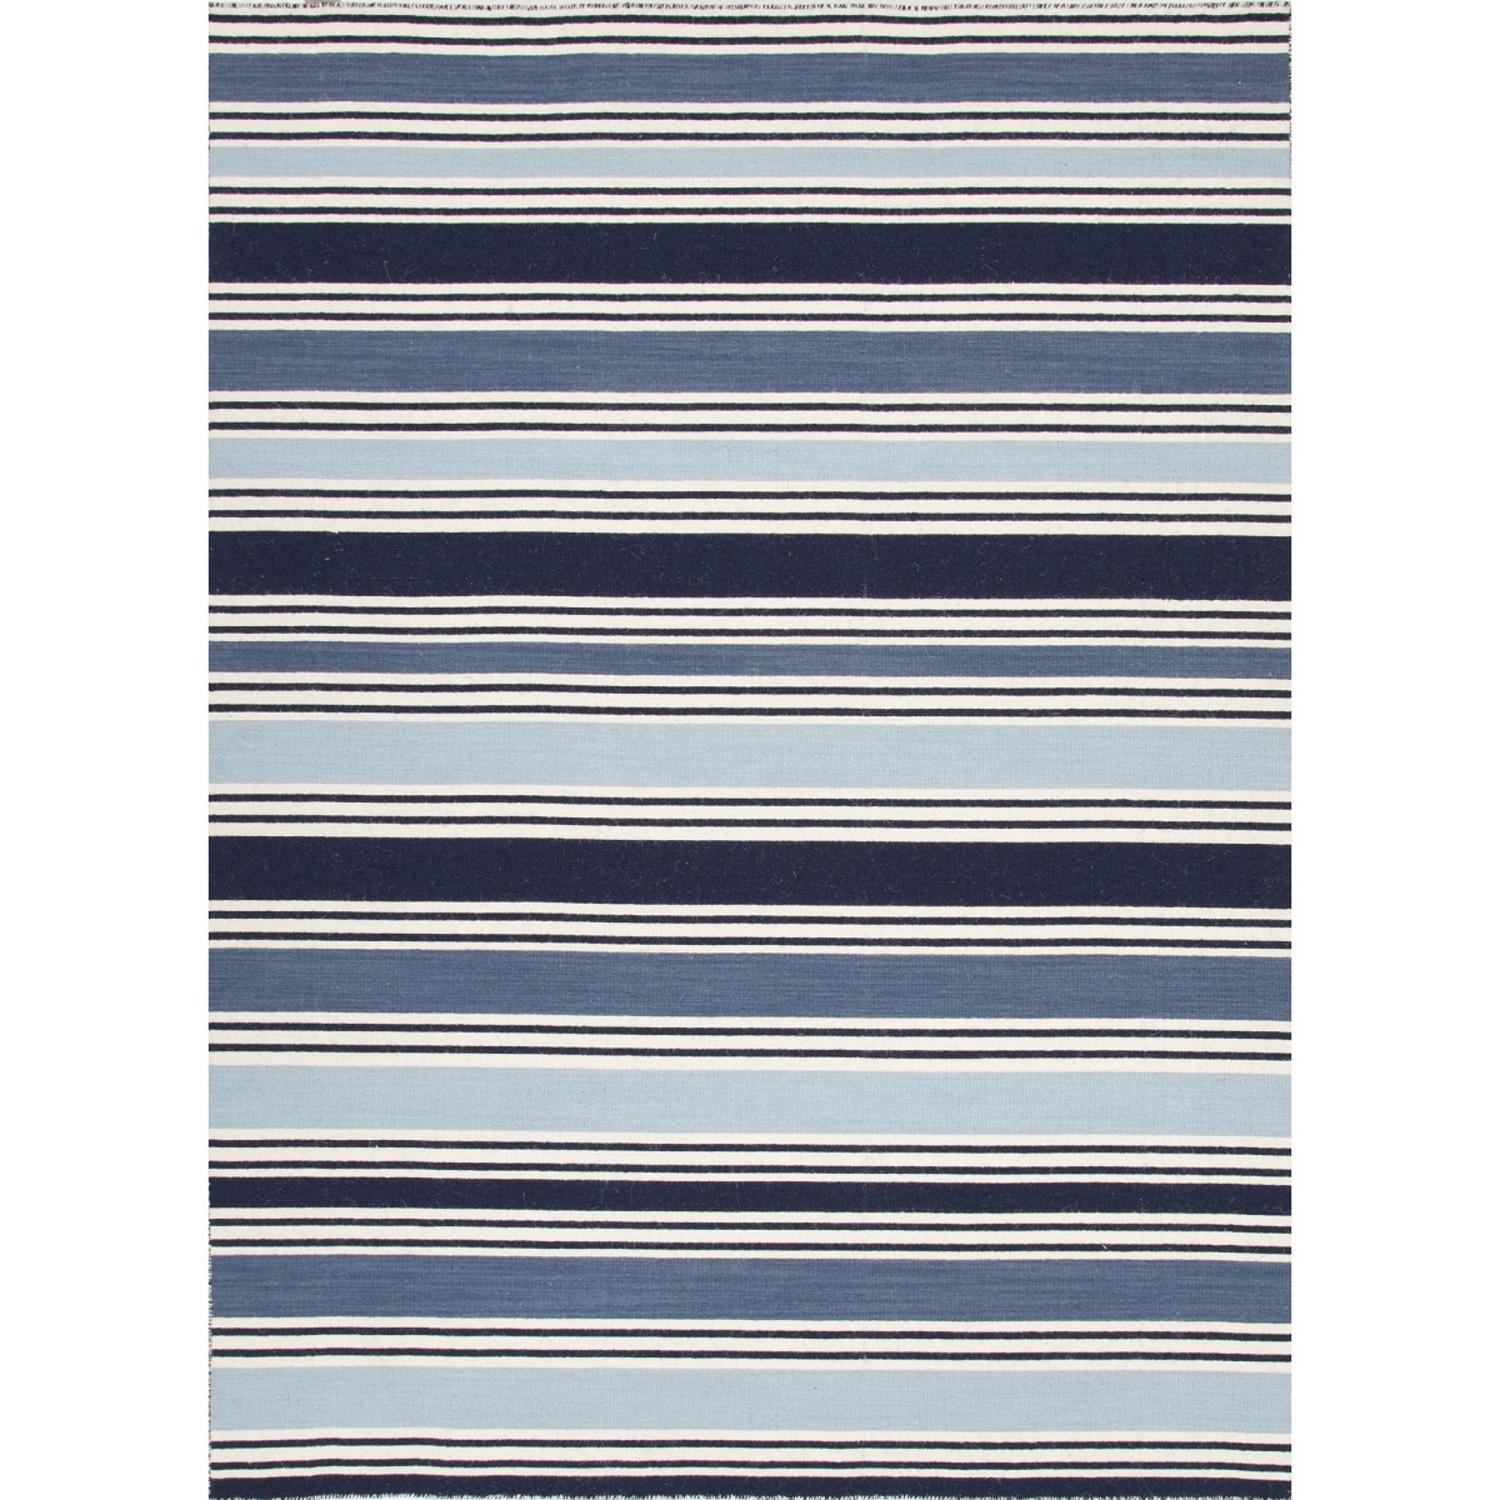 2' x 3' Navy Blue, Baby Blue and White Salada Flat-Weave Striped Wool Area Throw Rug